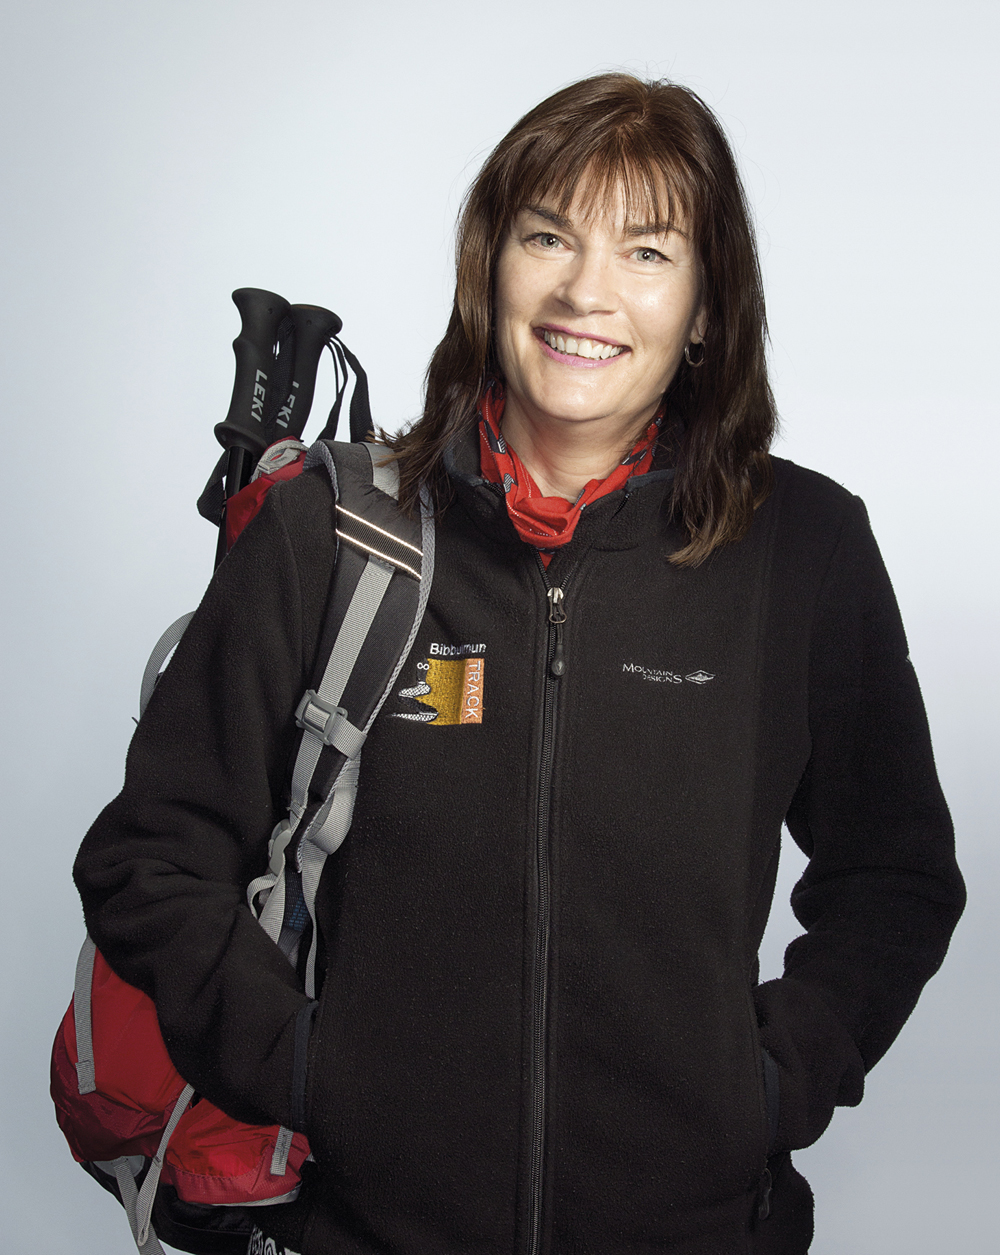 Portrait of Linda Daniels with hiking gear